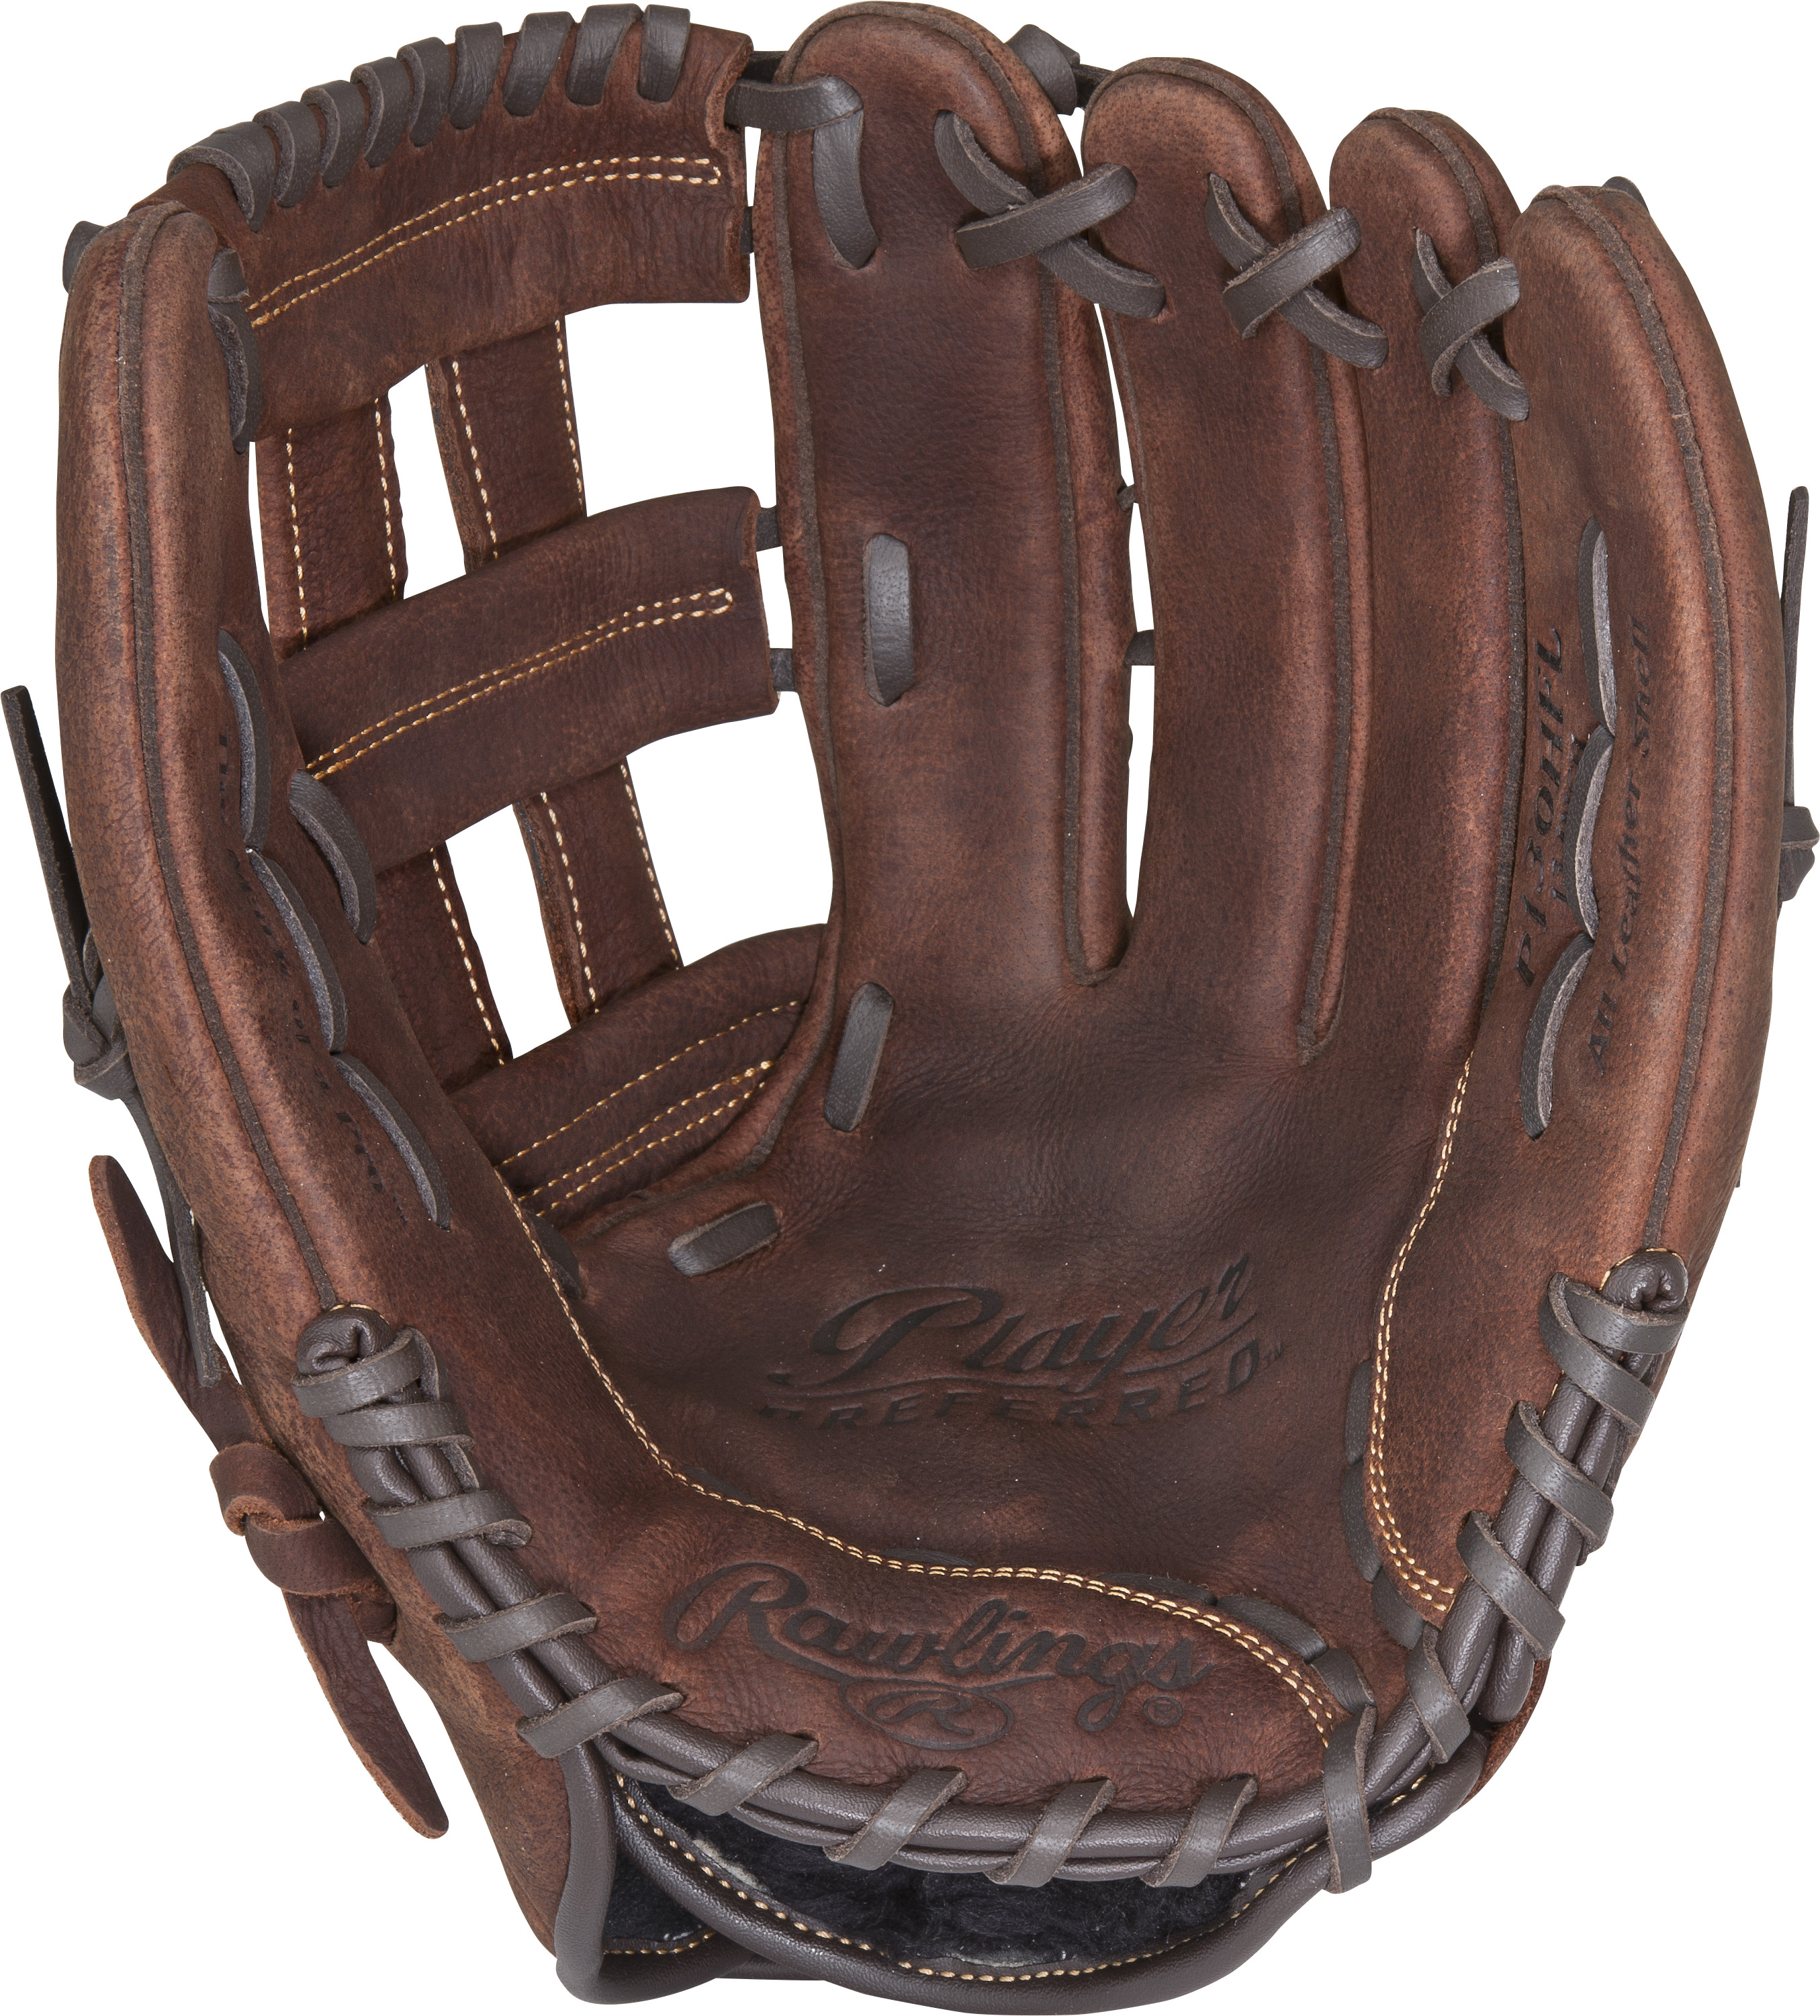 http://www.bestbatdeals.com/images/gloves/rawlings/P130HFL_palm.jpg